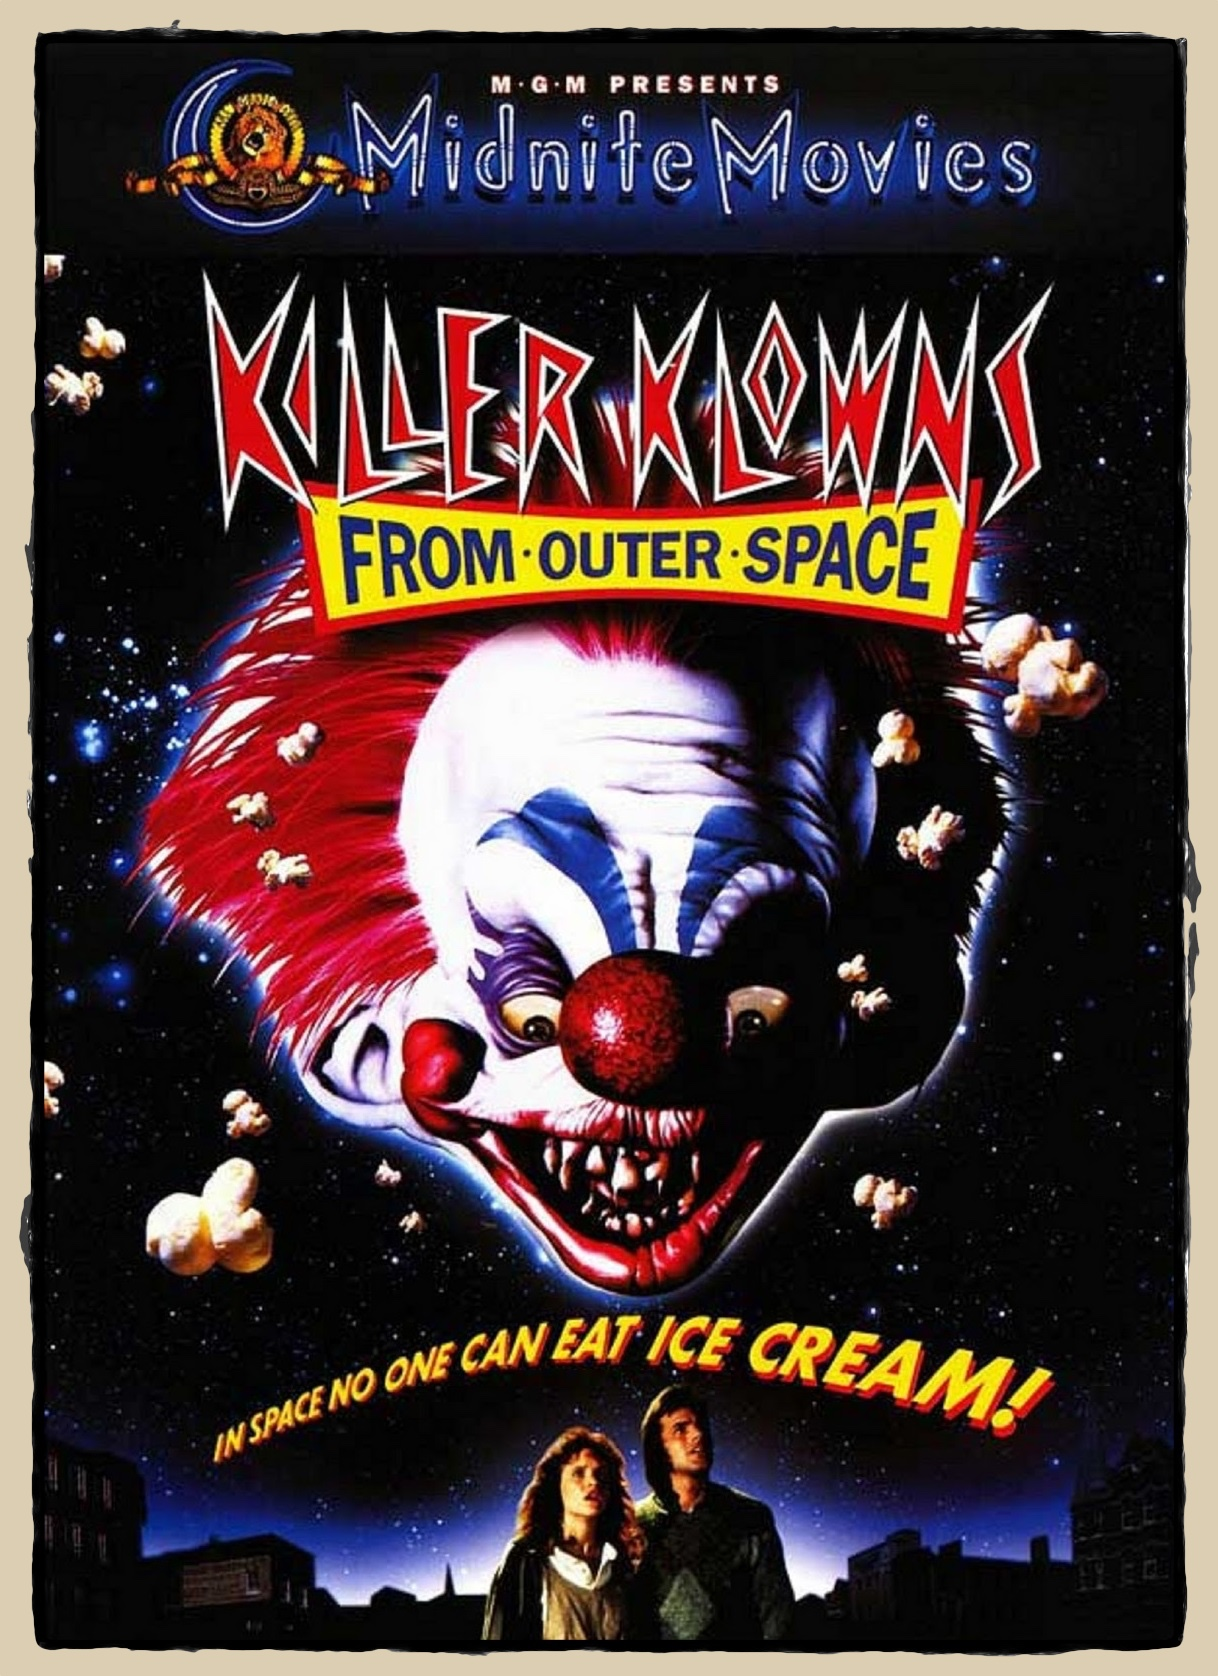 Killer-klowns-from-outer-space-movie-poster